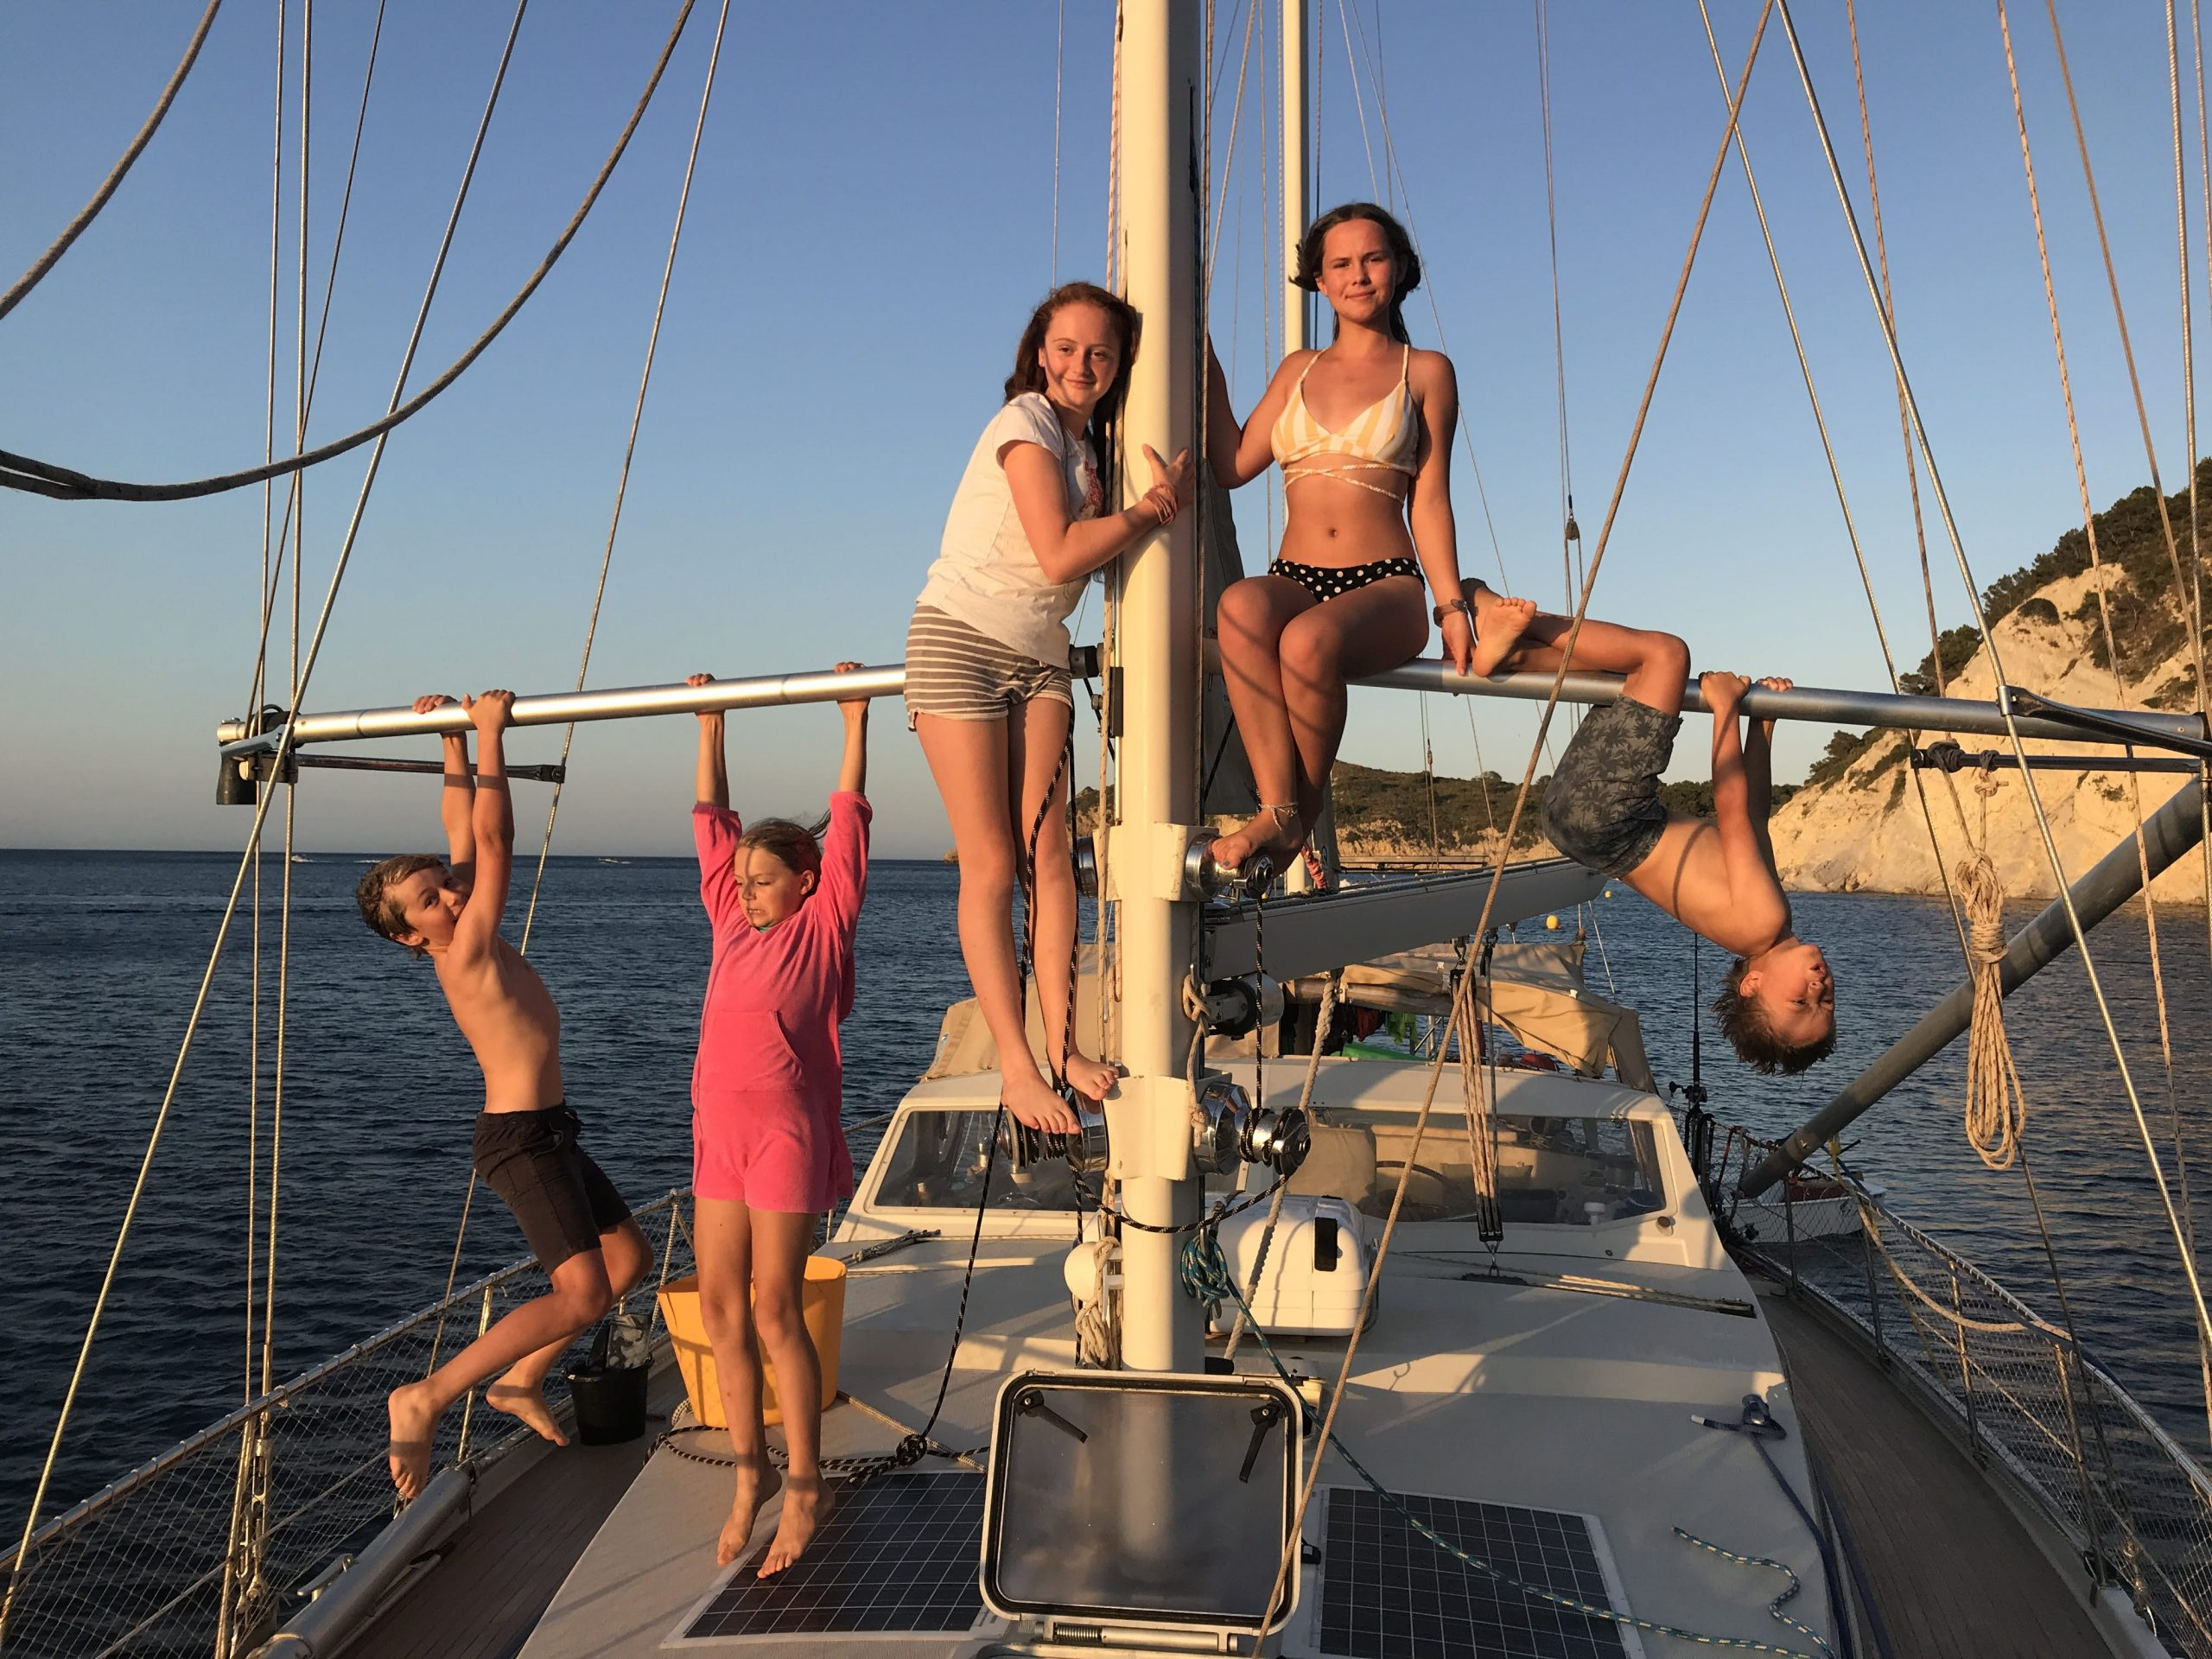 Hooked On Sailing the High Seas